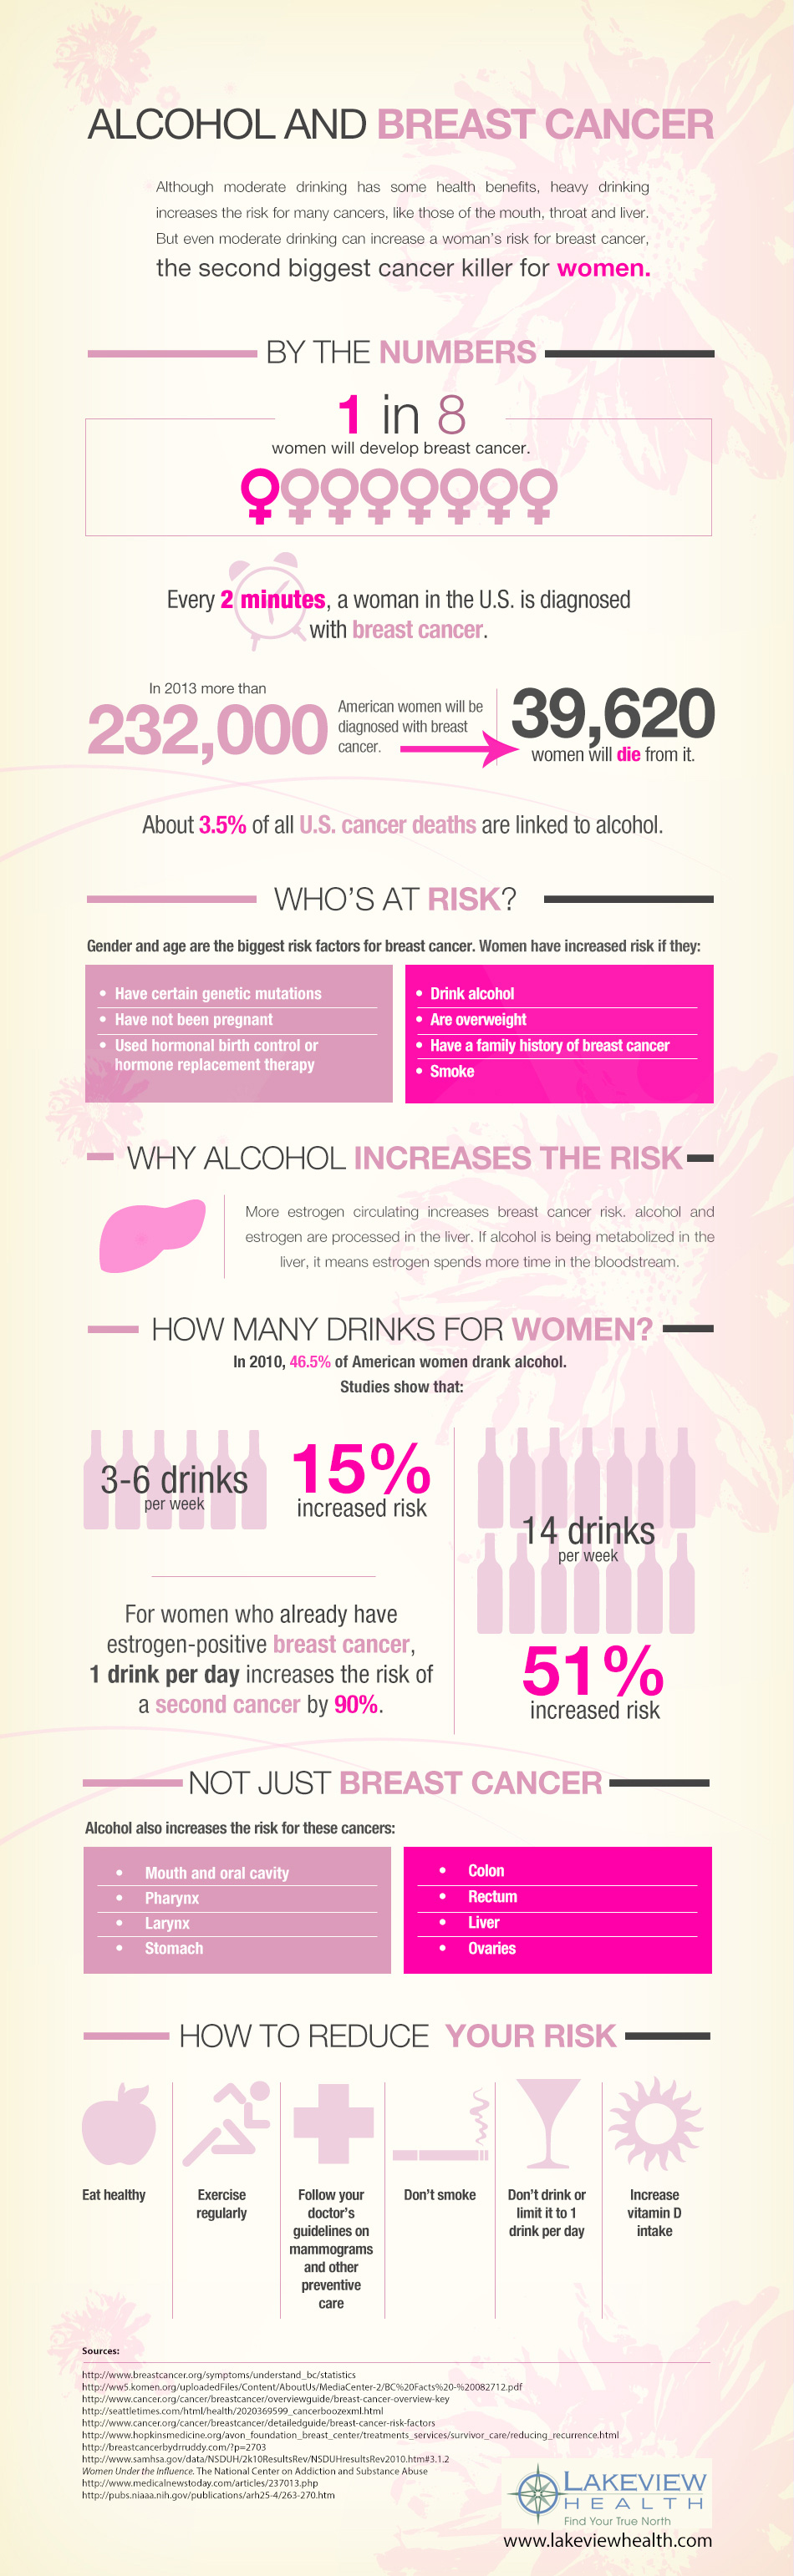 3. Alcohol and Breast cancer